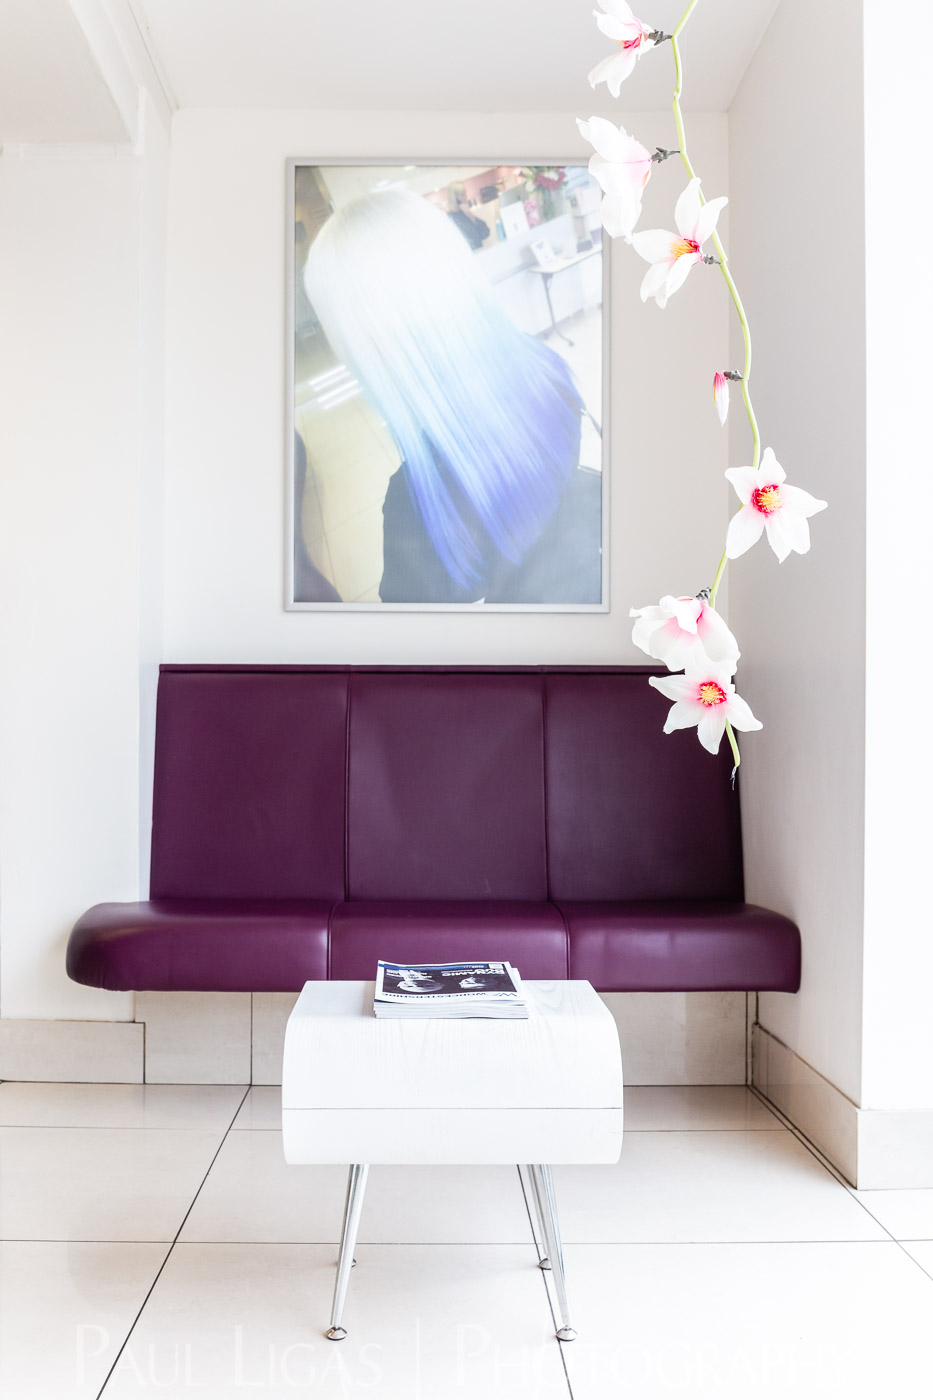 Andrew Slater Hairdressing-Malvern-Interior design photographer-photography-9820